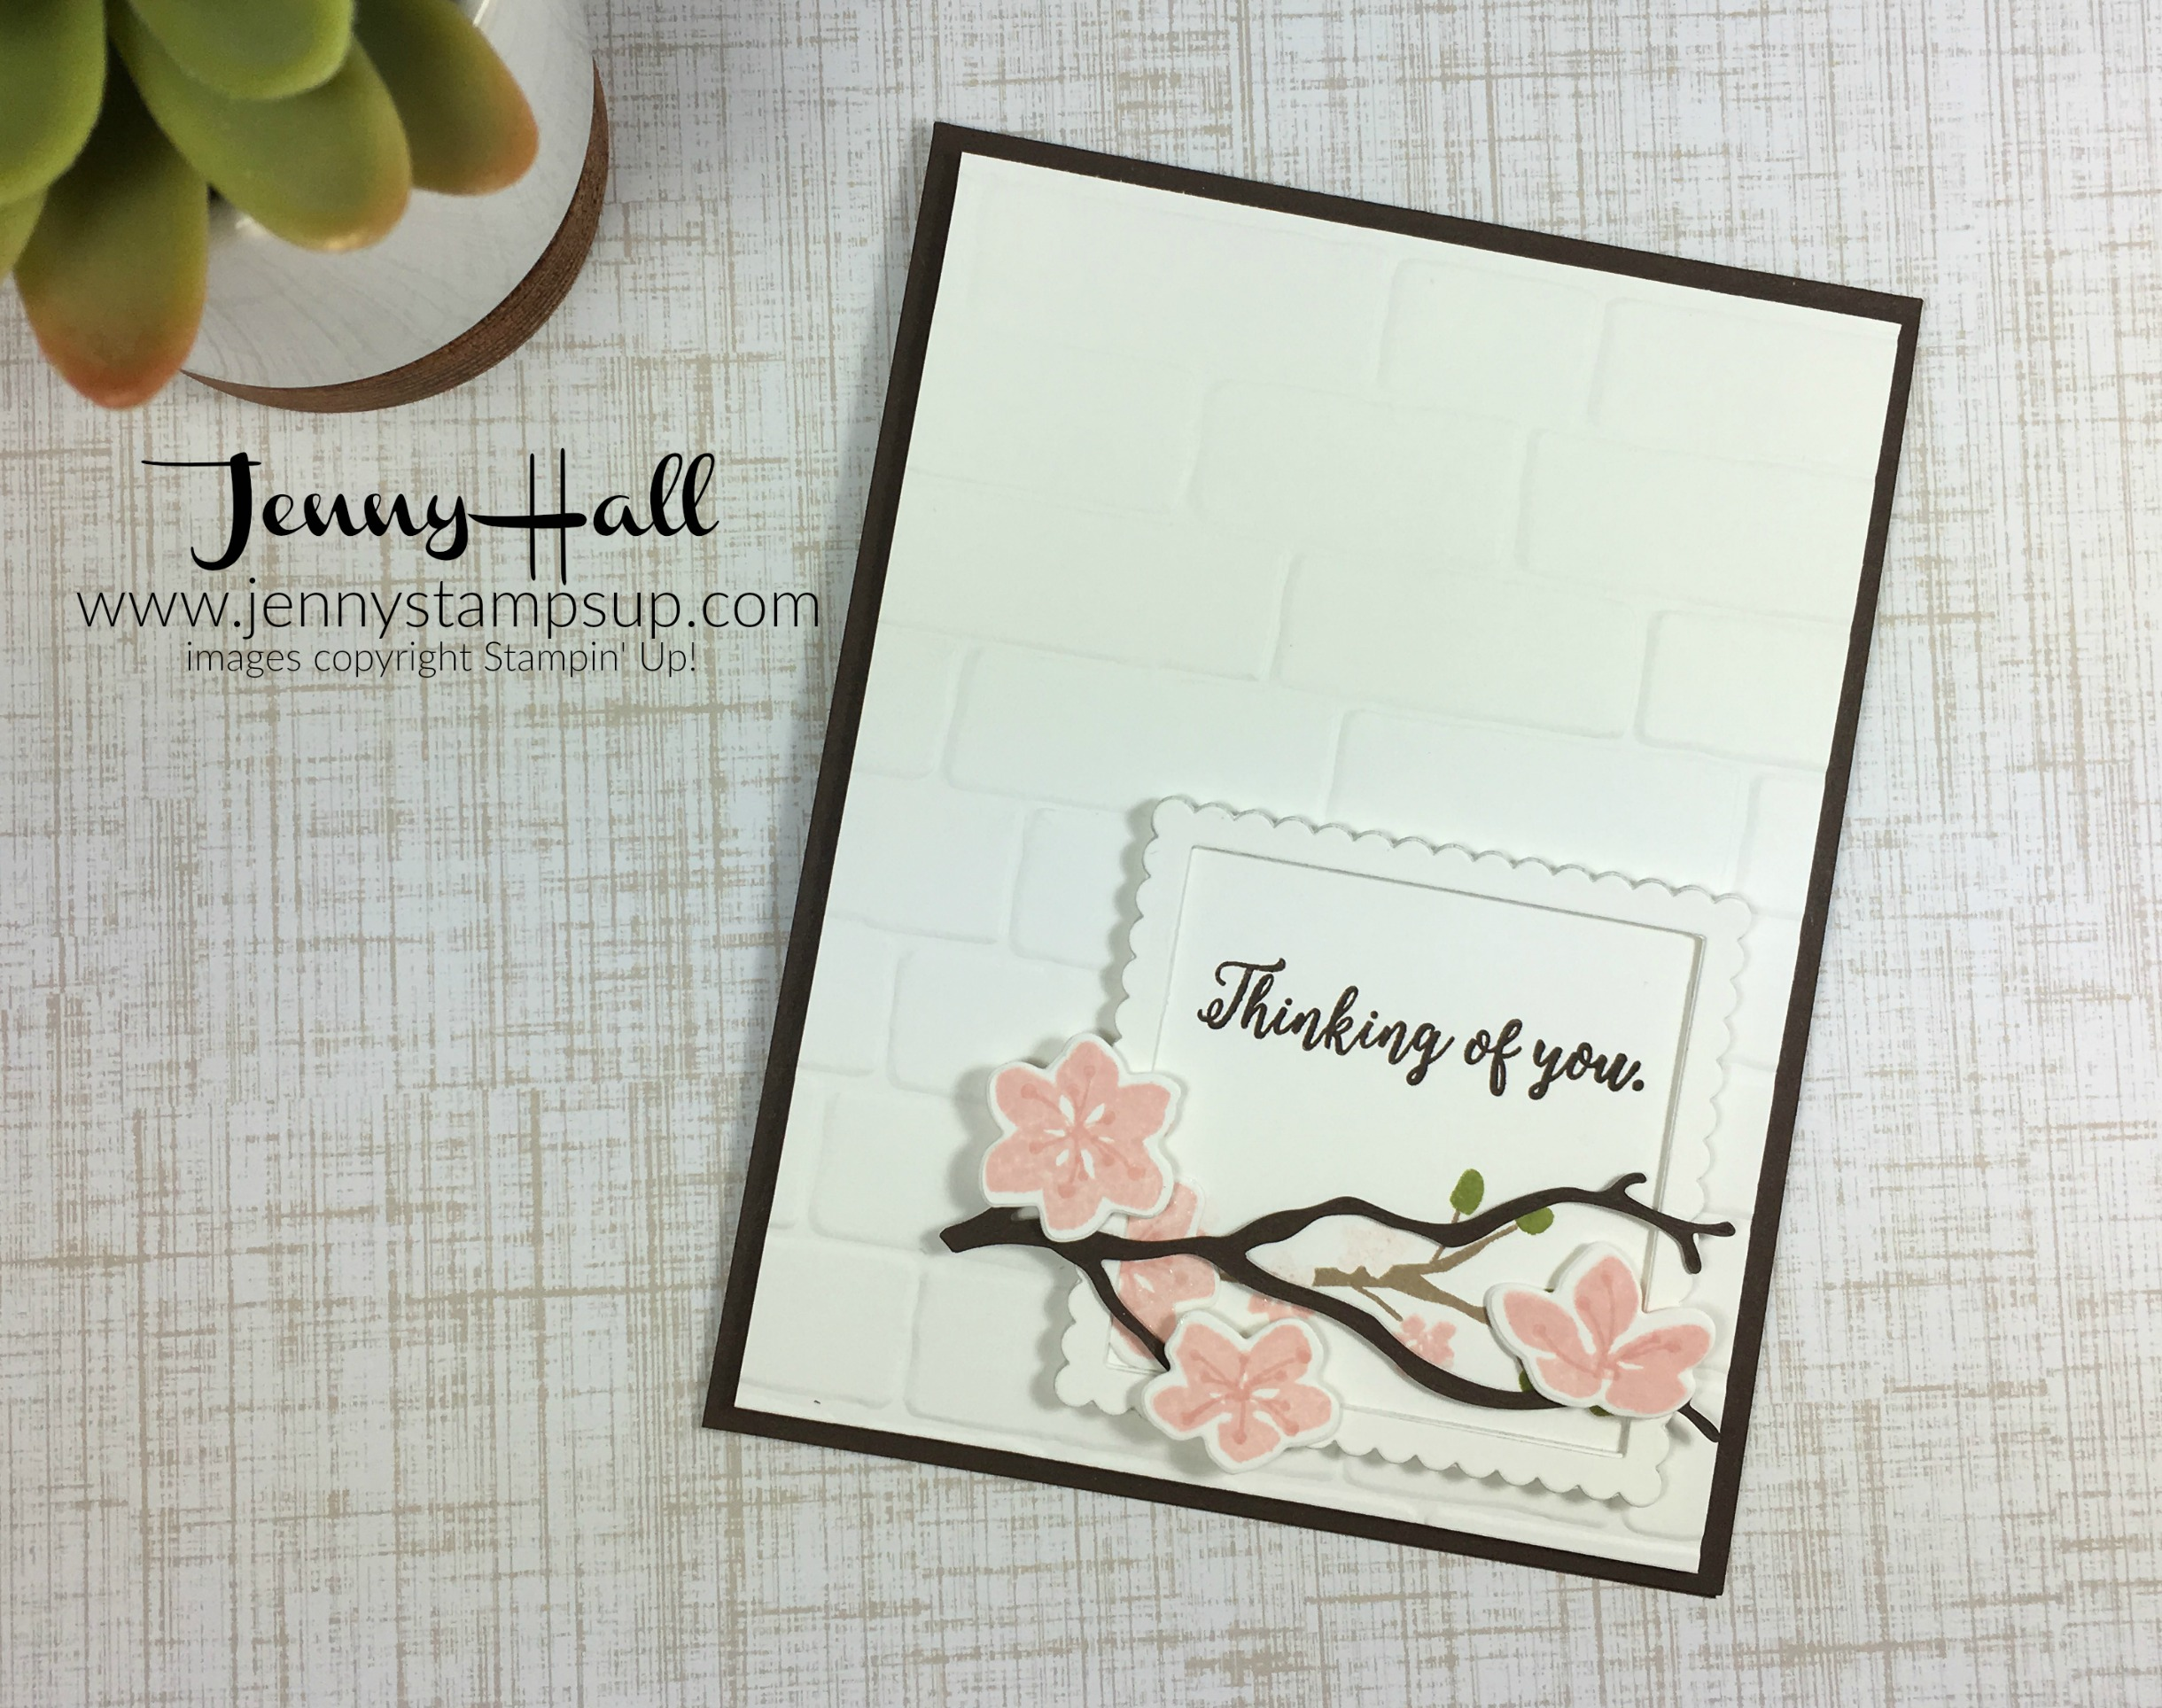 framed sentiment with colorful seasons by Jenny Hall www.jennystampsup.com